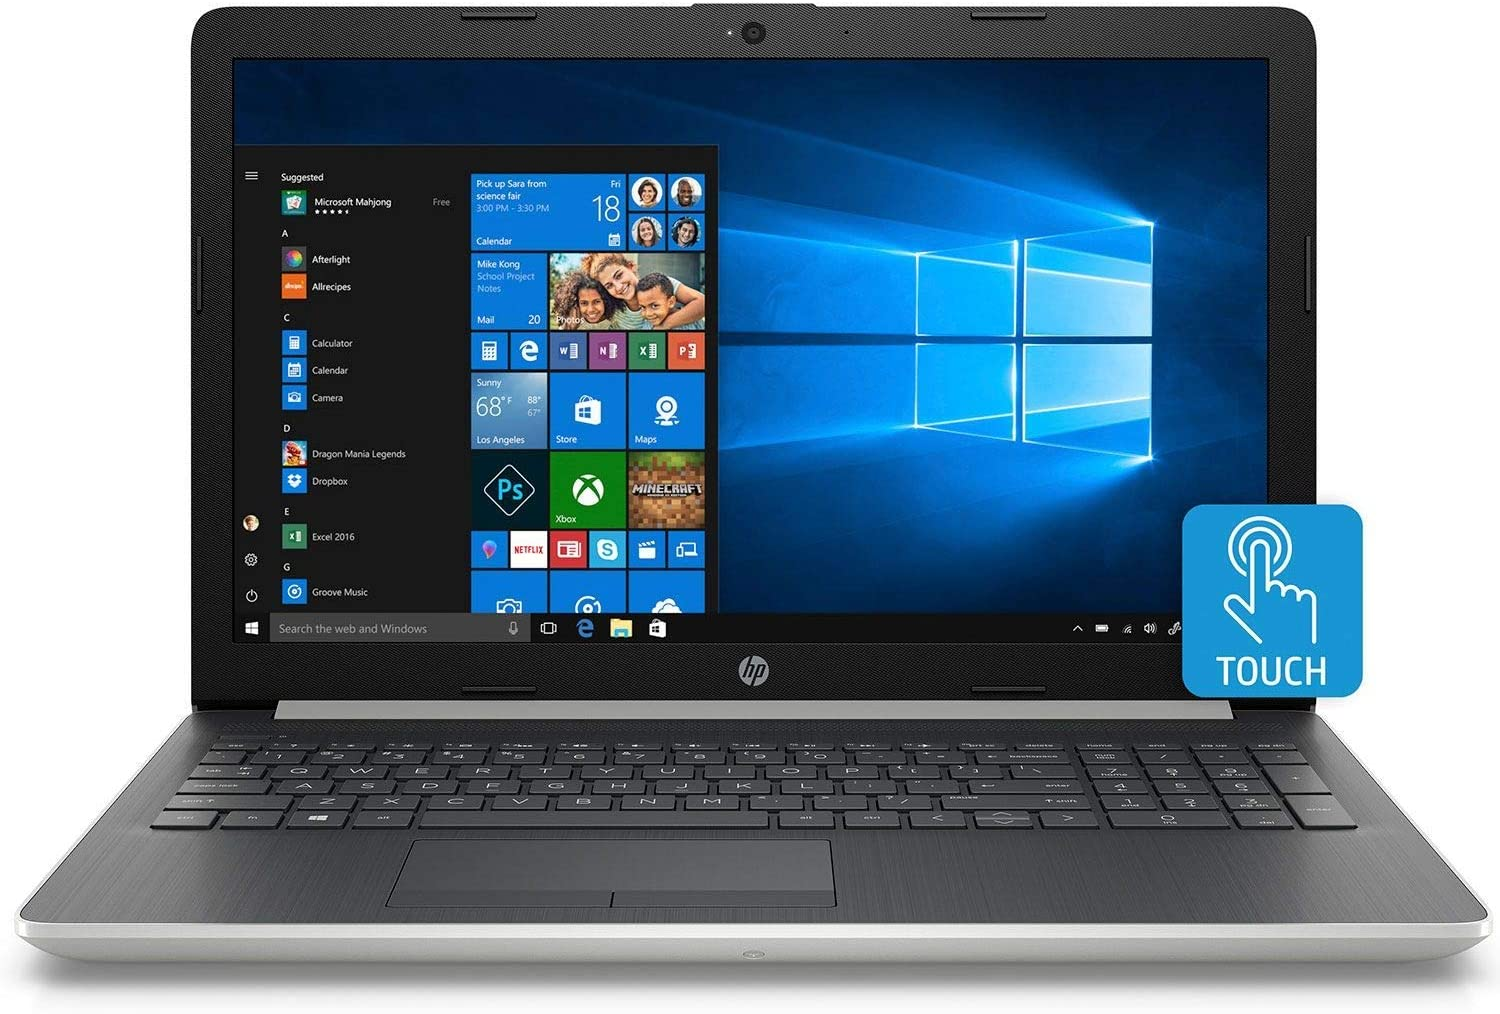 2019 Newest Premium HP Pavilion 15.6 Inch Touchscreen Laptop (Intel 4-Core i7-8565U up to 4.6GHz, 16GB DDR4 RAM, 256GB PCIe SSD, Bluetooth, HDMI, Webcam, Windows 10)